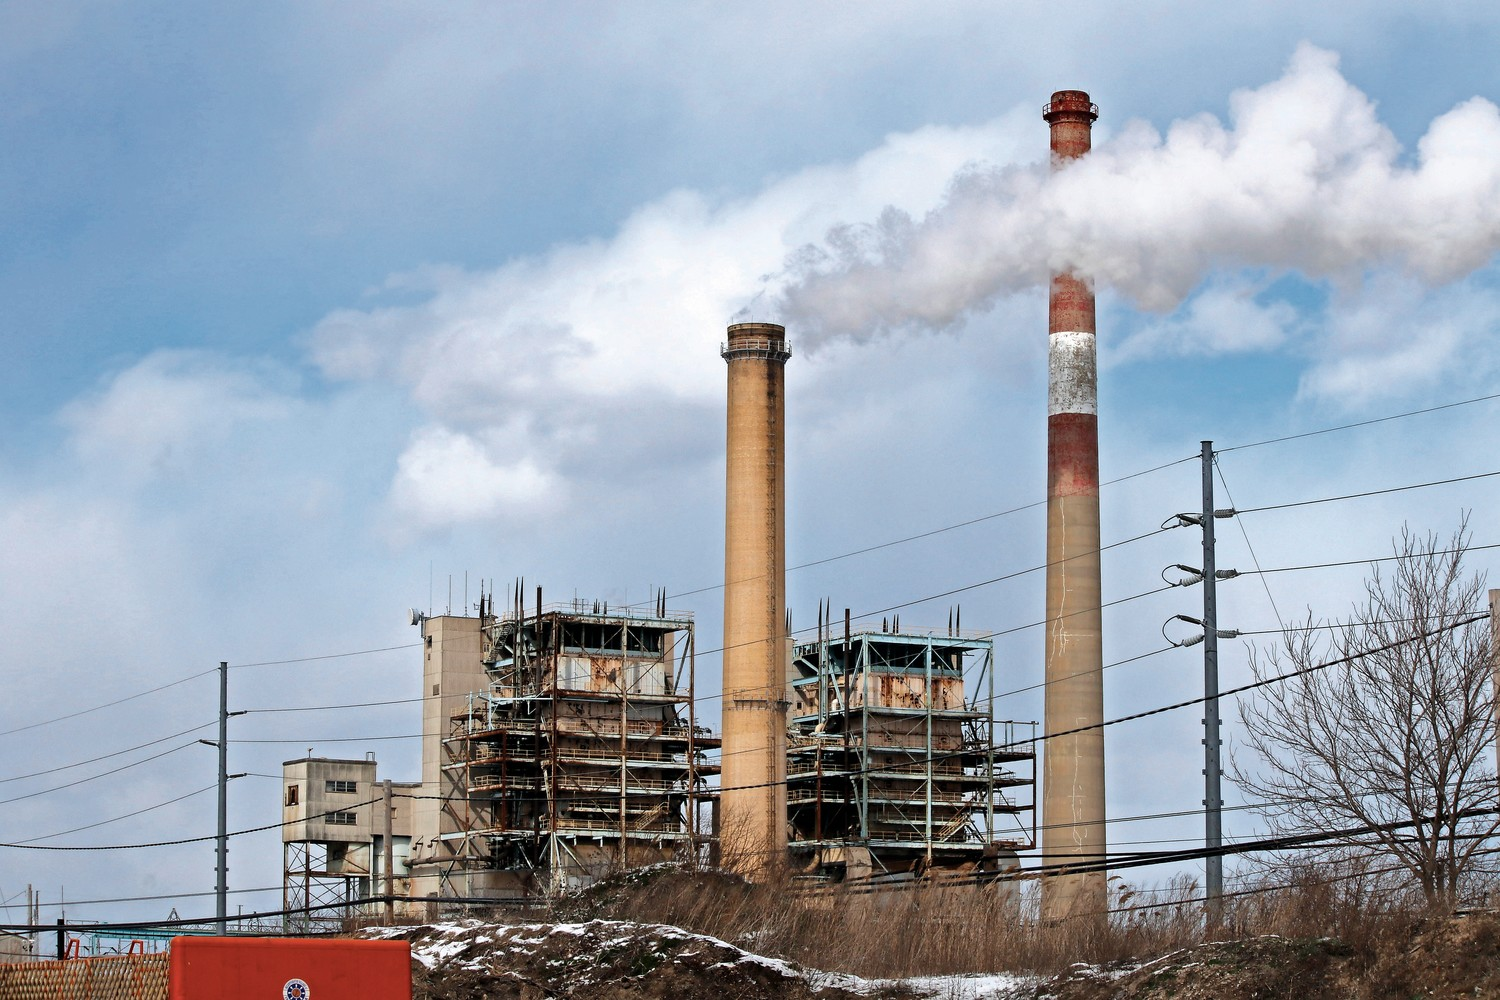 Business owners are fearing the possible tax increases ahead of the Long Island Power Authority's looming tax certiorari case on its E.F. Barrett power plant in Island Park.